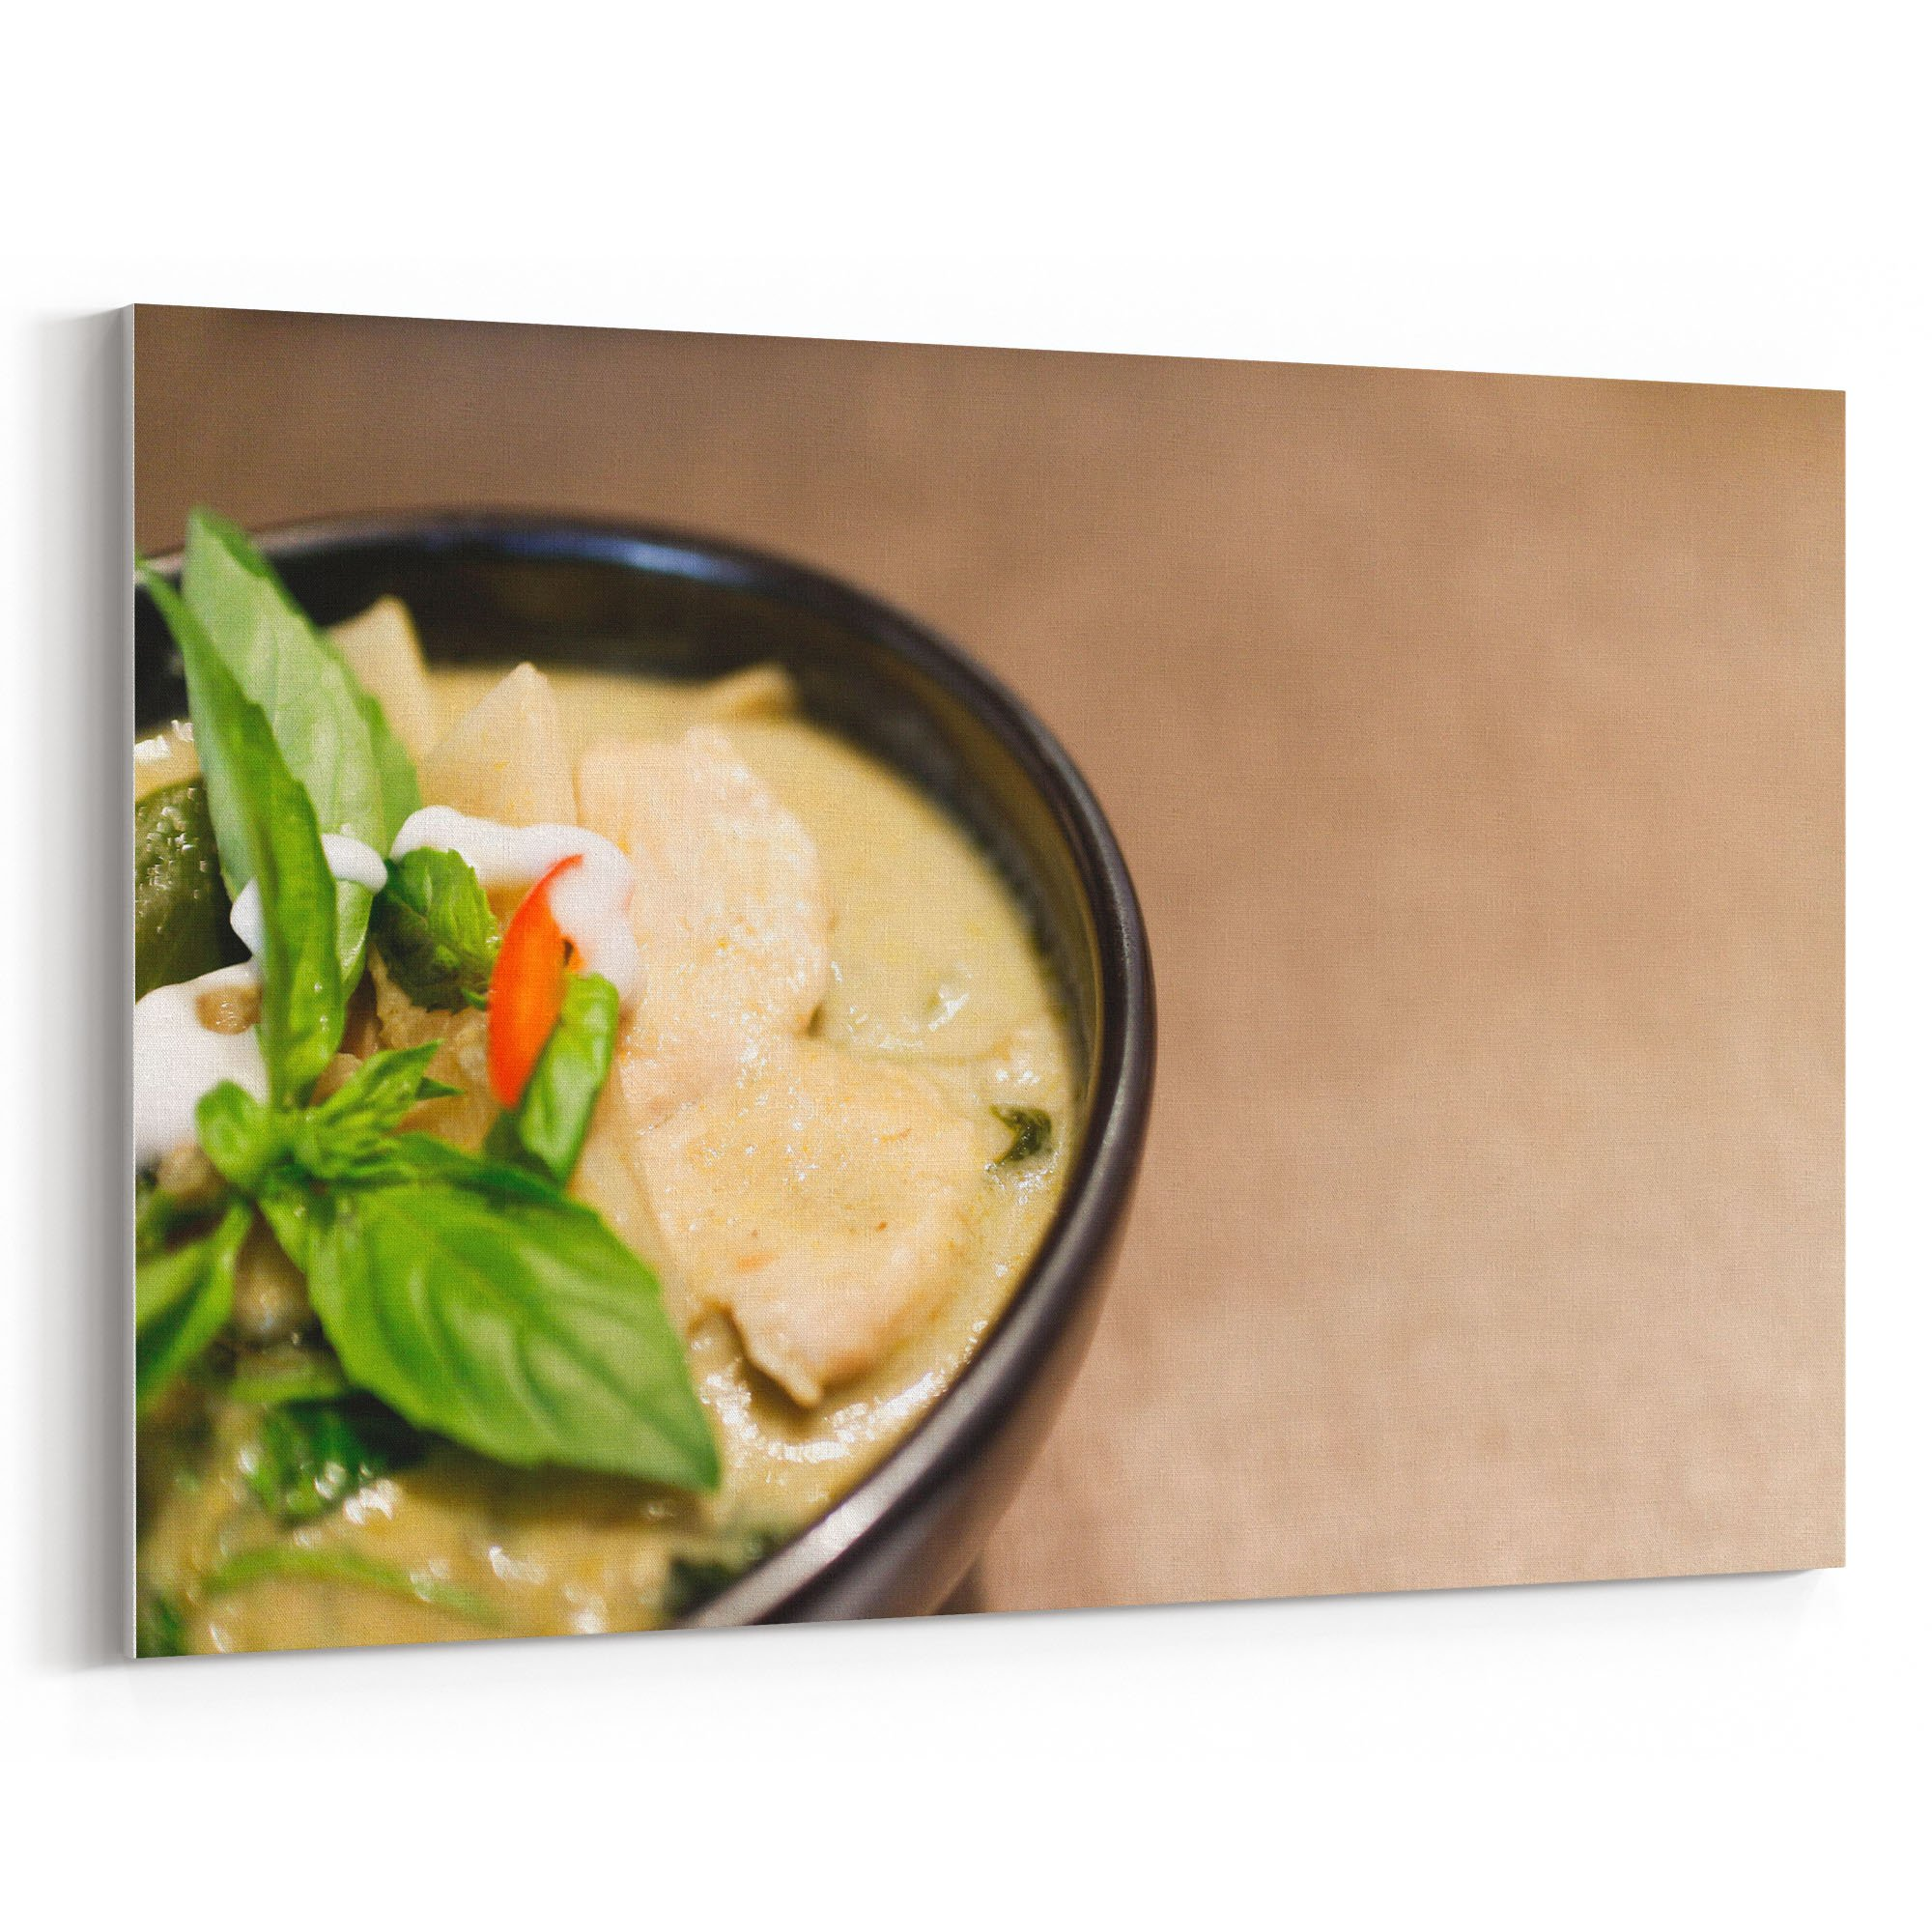 Westlake Art - Curry Thai - 12x18 Canvas Print Wall Art - Canvas Stretched Gallery Wrap Modern Picture Photography Artwork - Ready to Hang 12x18 Inch (2715-C061C) by Westlake Art